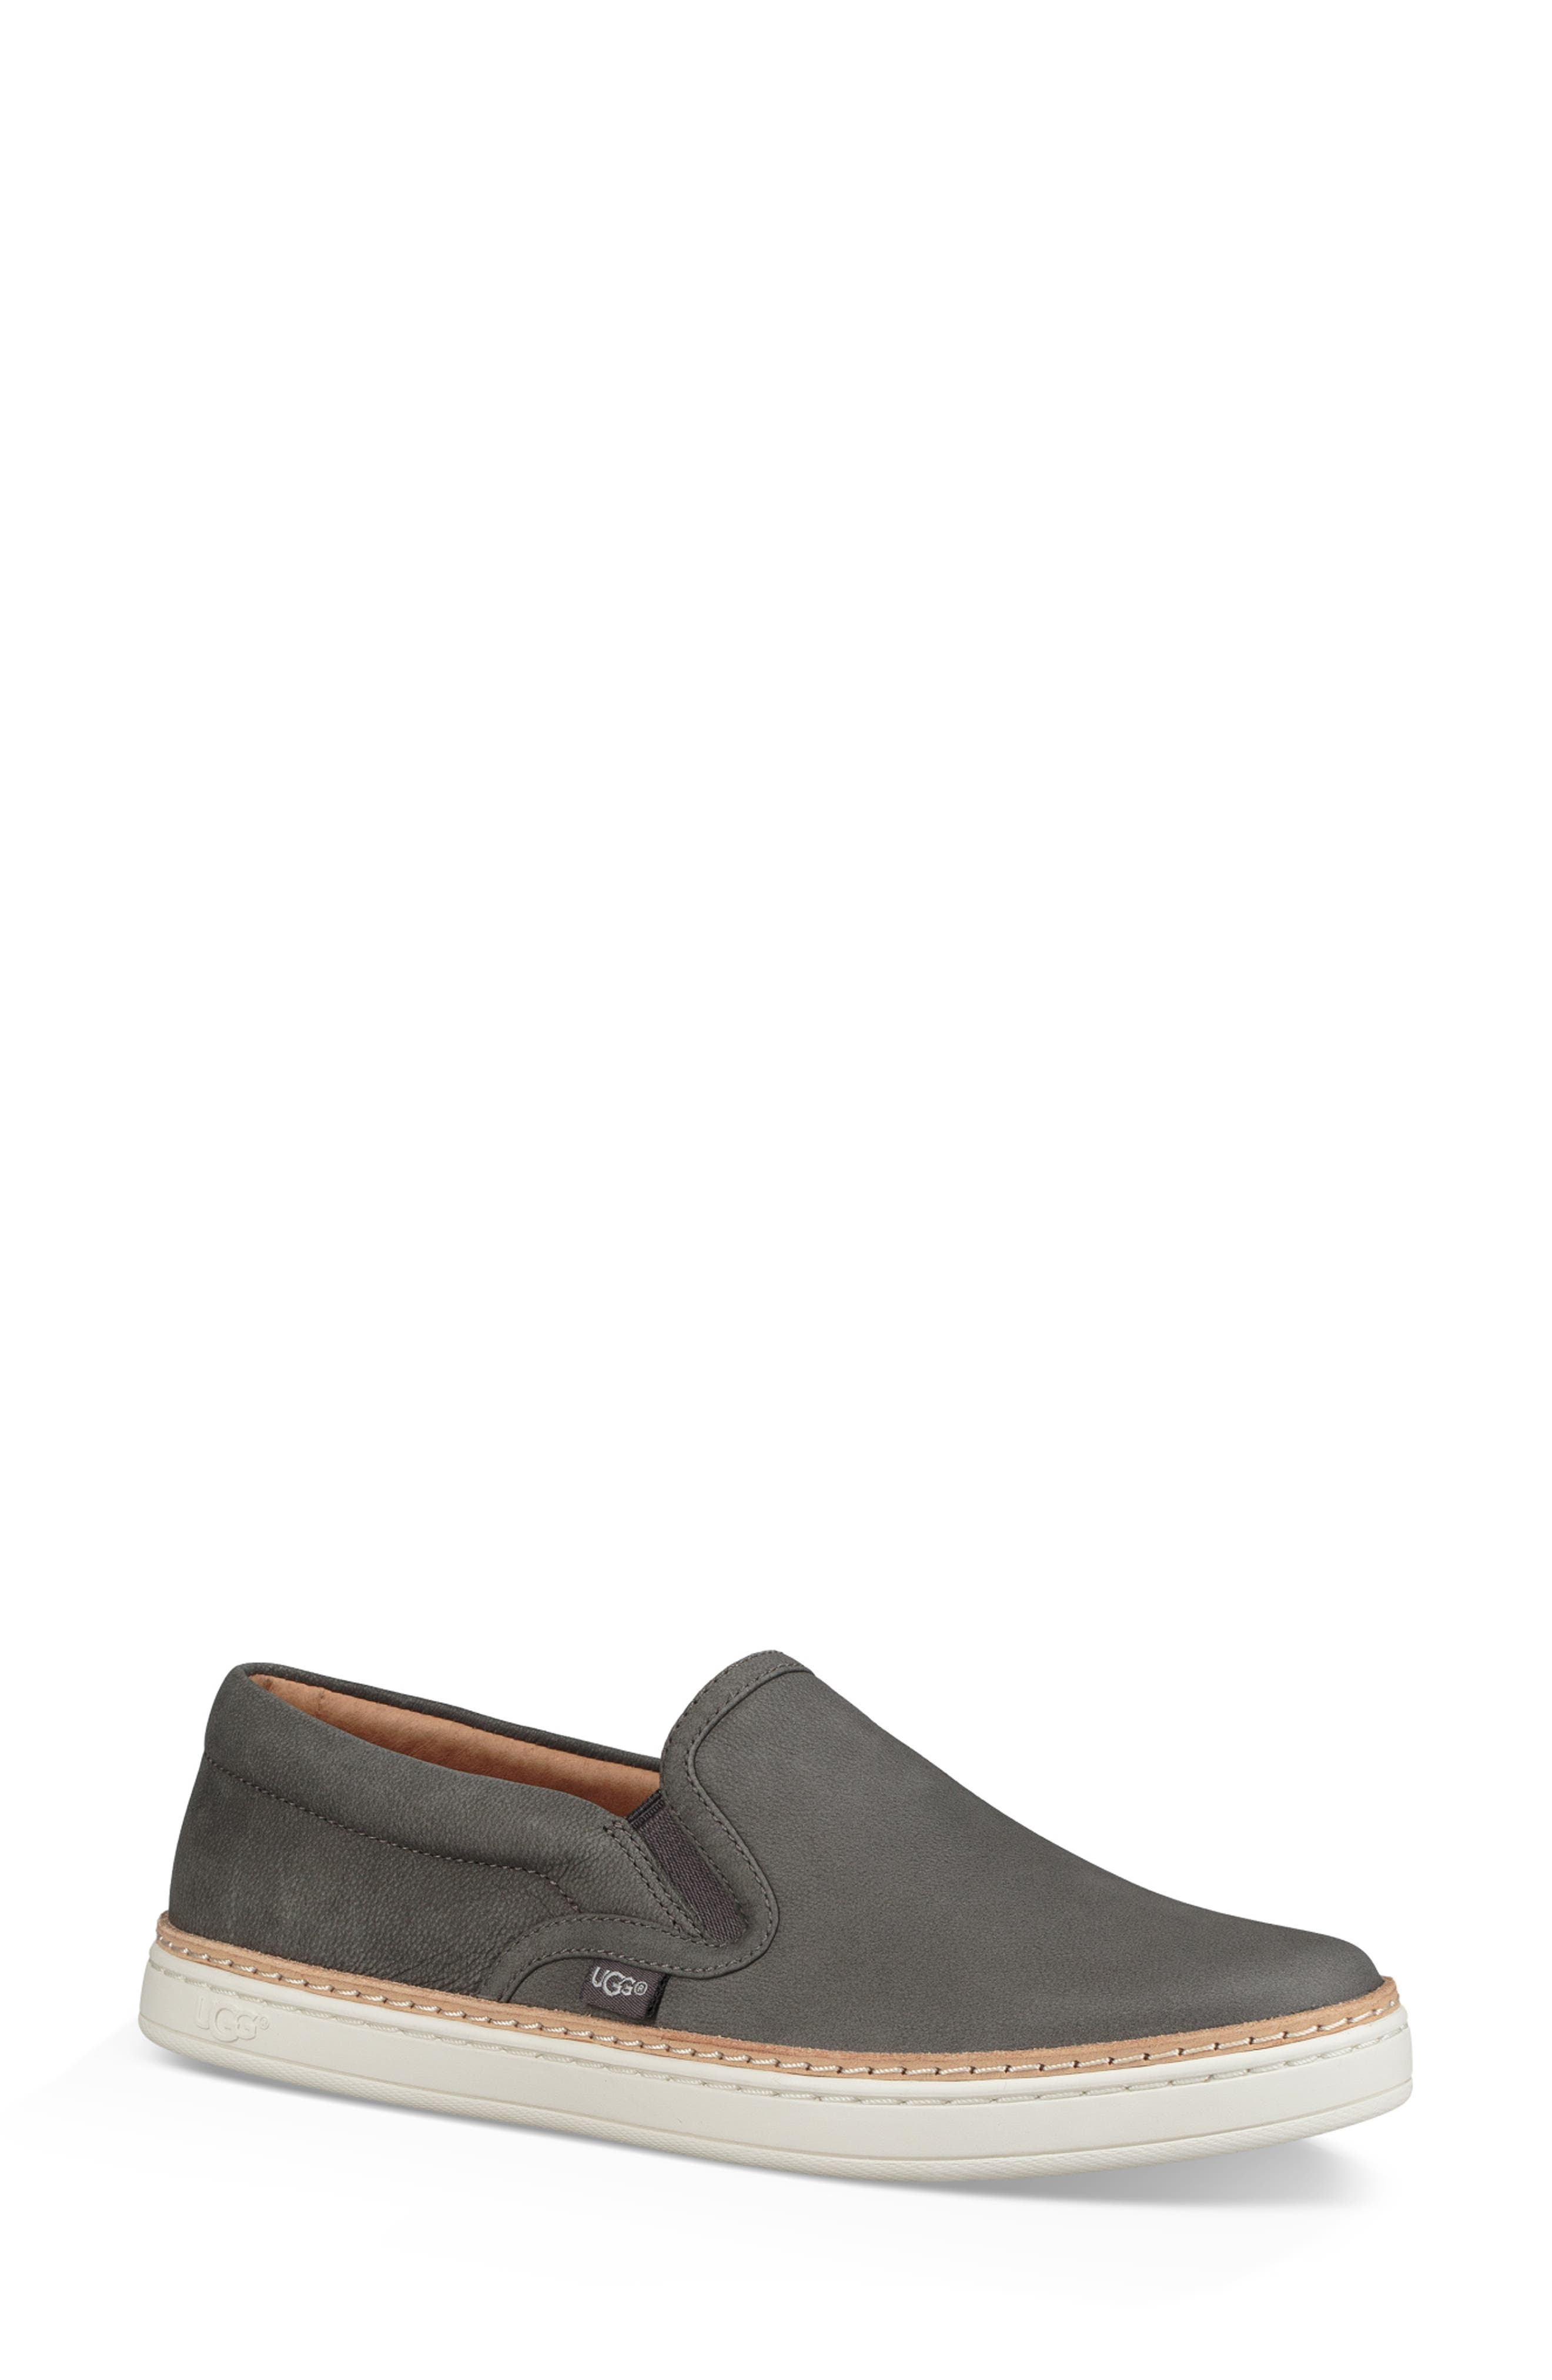 Soleda Slip-On Sneaker,                             Main thumbnail 1, color,                             CHARCOAL LEATHER